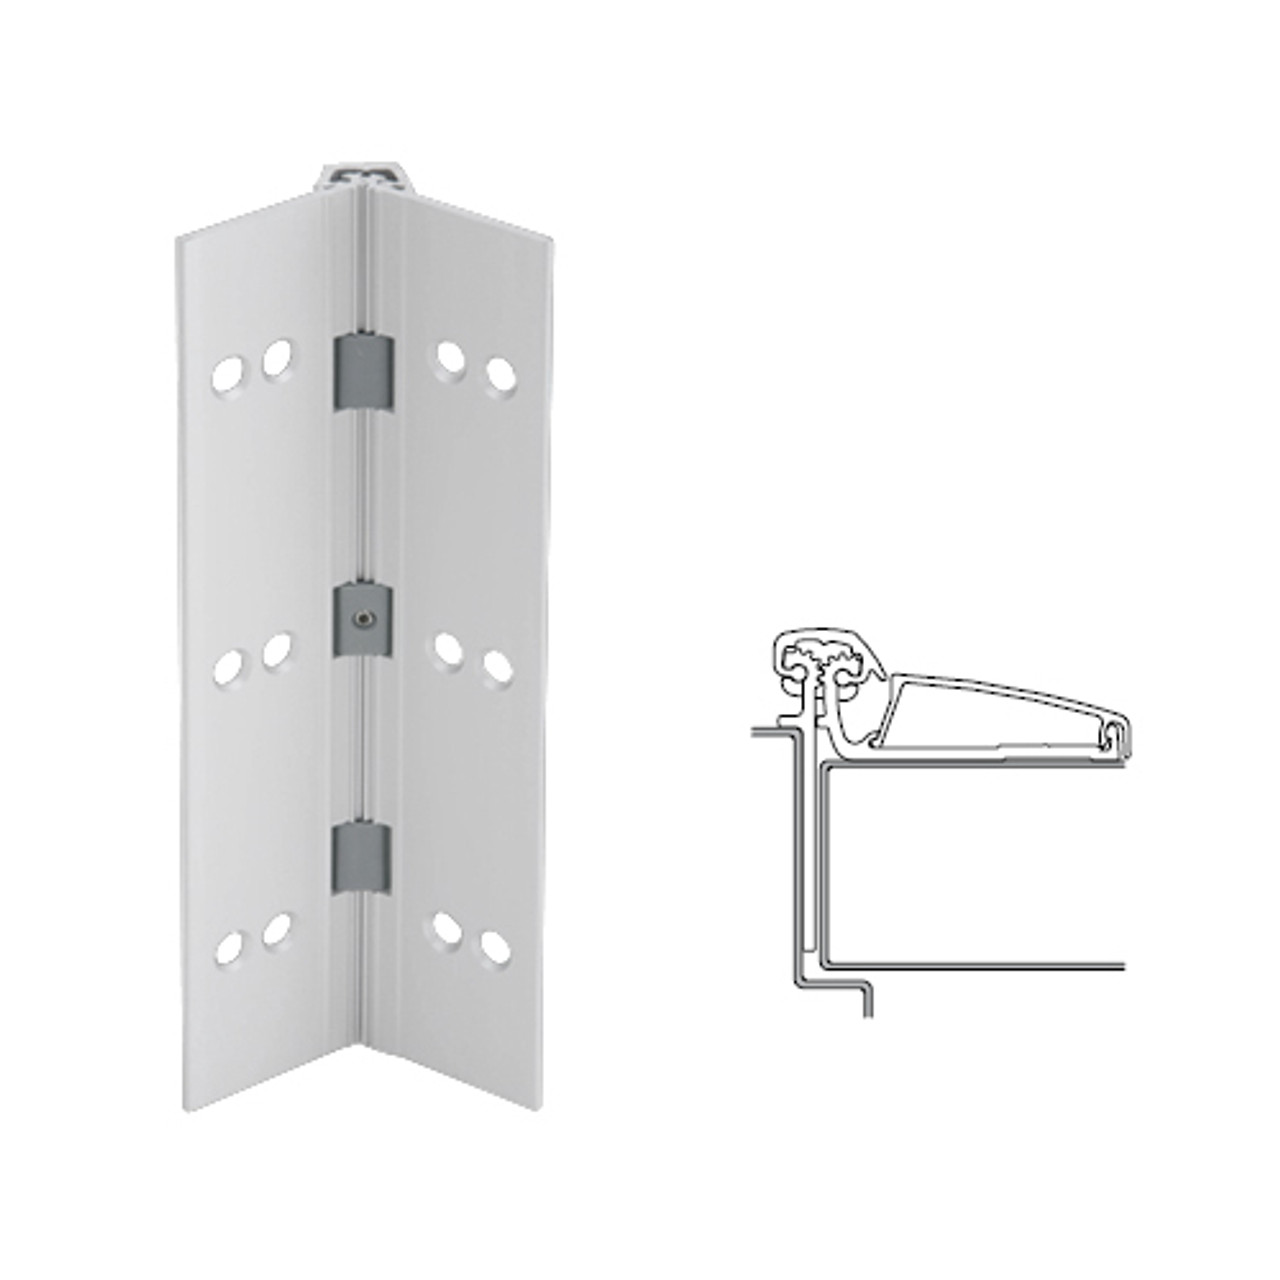 046XY-US28-95-TEKWD IVES Adjustable Half Surface Continuous Geared Hinges with Wood Screws in Satin Aluminum